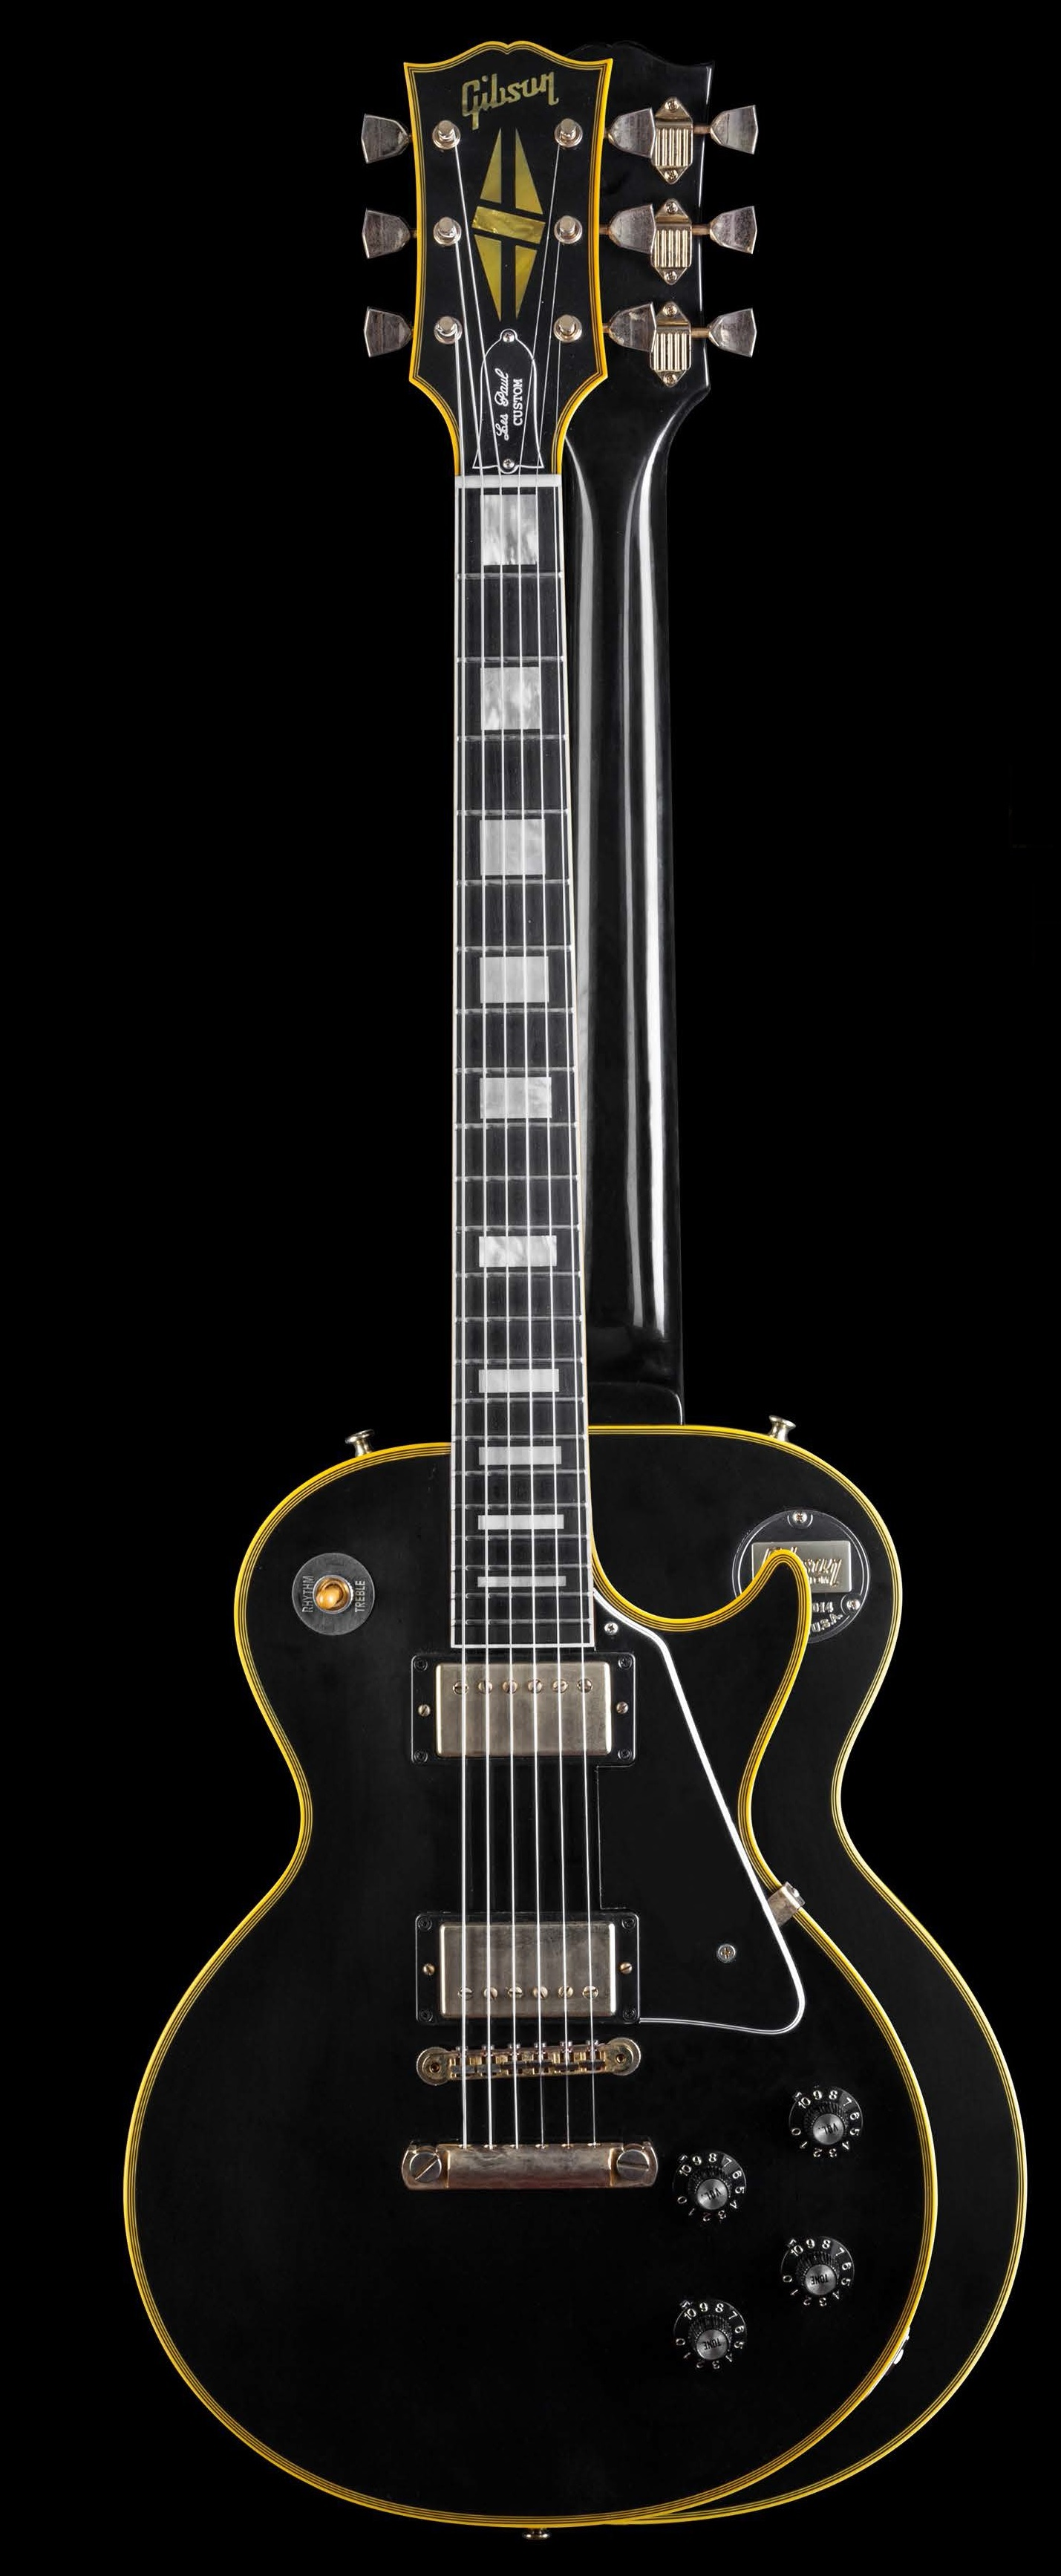 Custom 1974 Les Paul Wiring Diagram Trusted Diagrams Gibson On Guitar Schematics 1968 Residential Electrical Symbols U2022 Recording